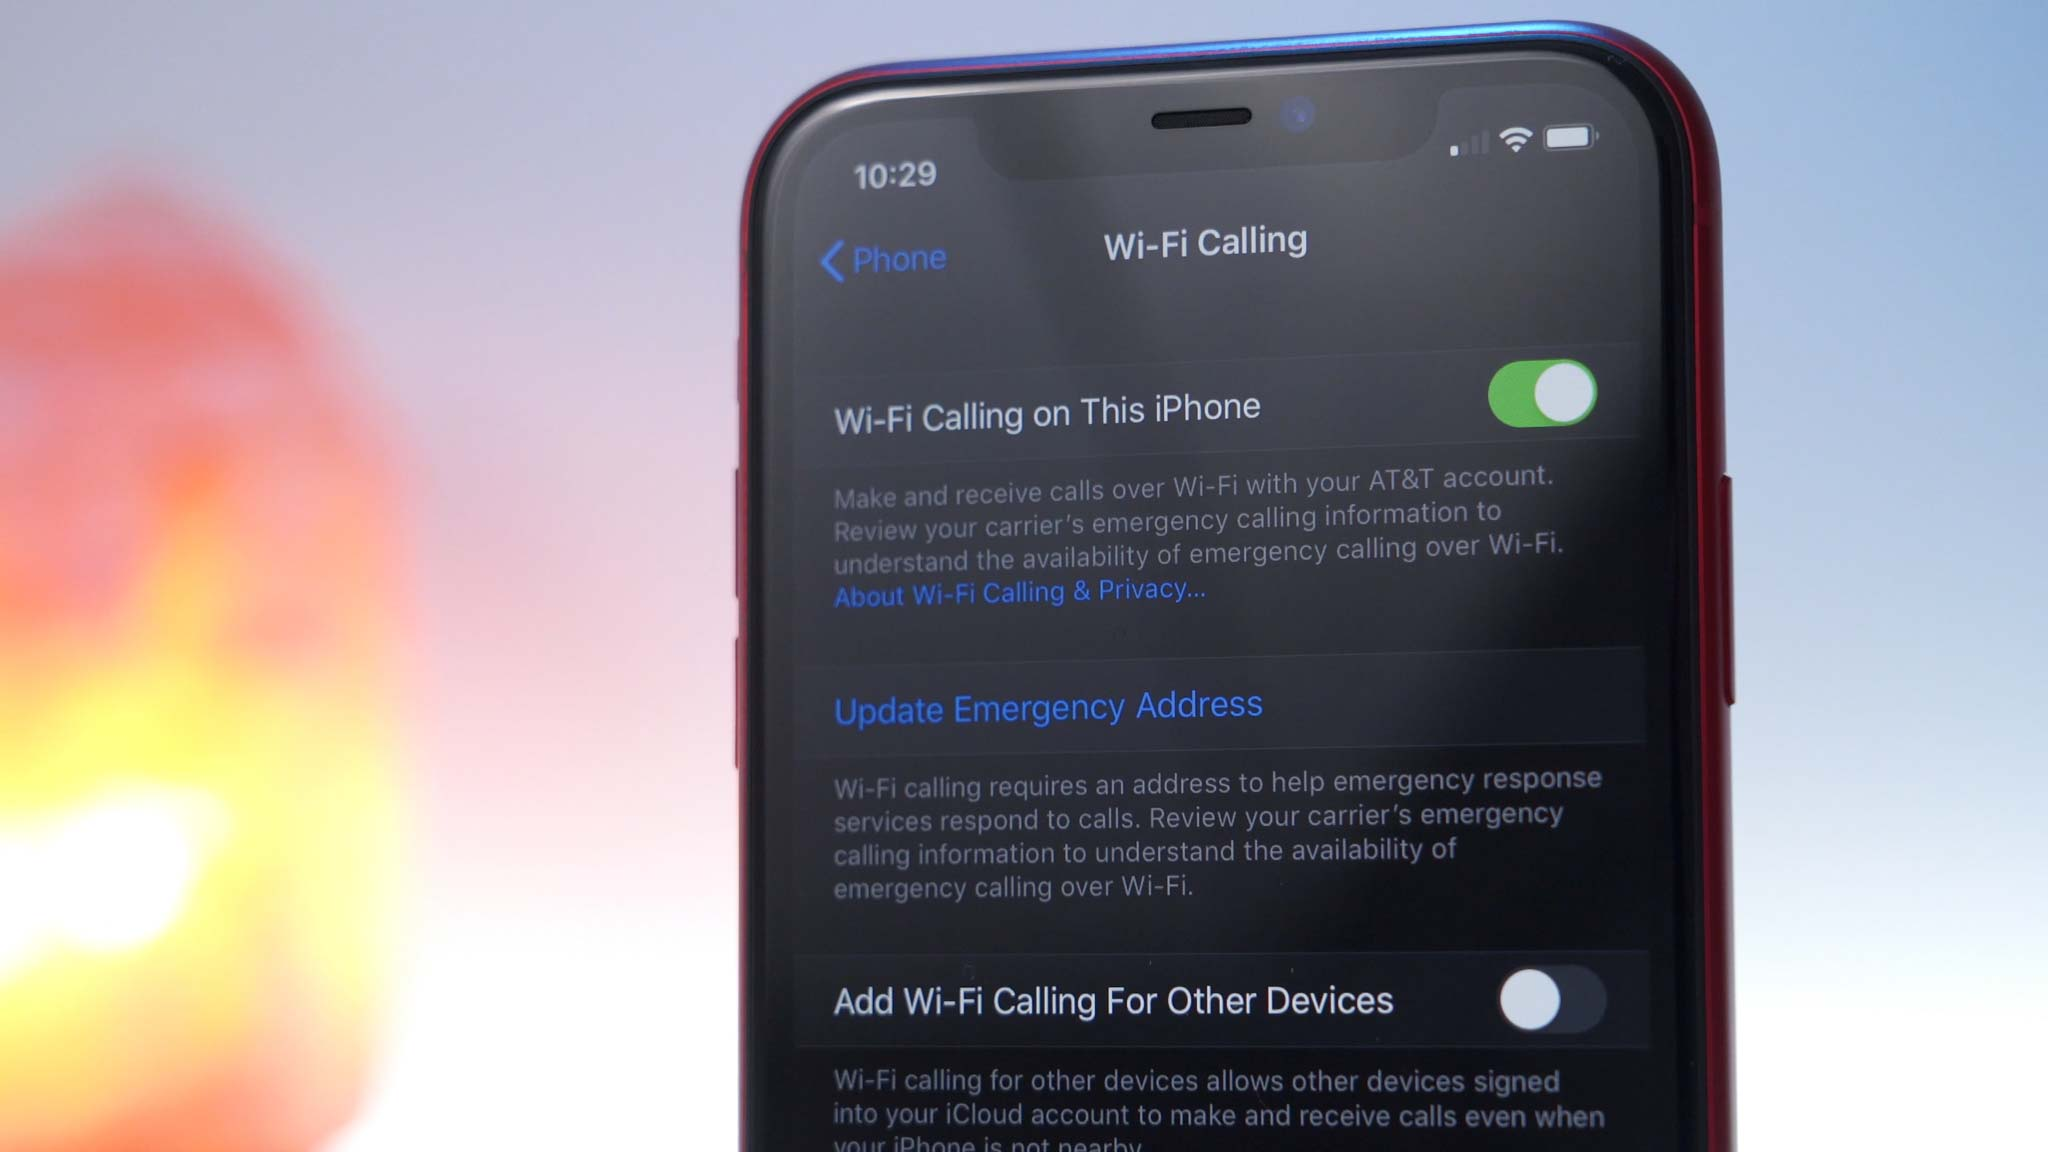 Wi-Fi calling option enabled on iPhone 11 Pro in settings app